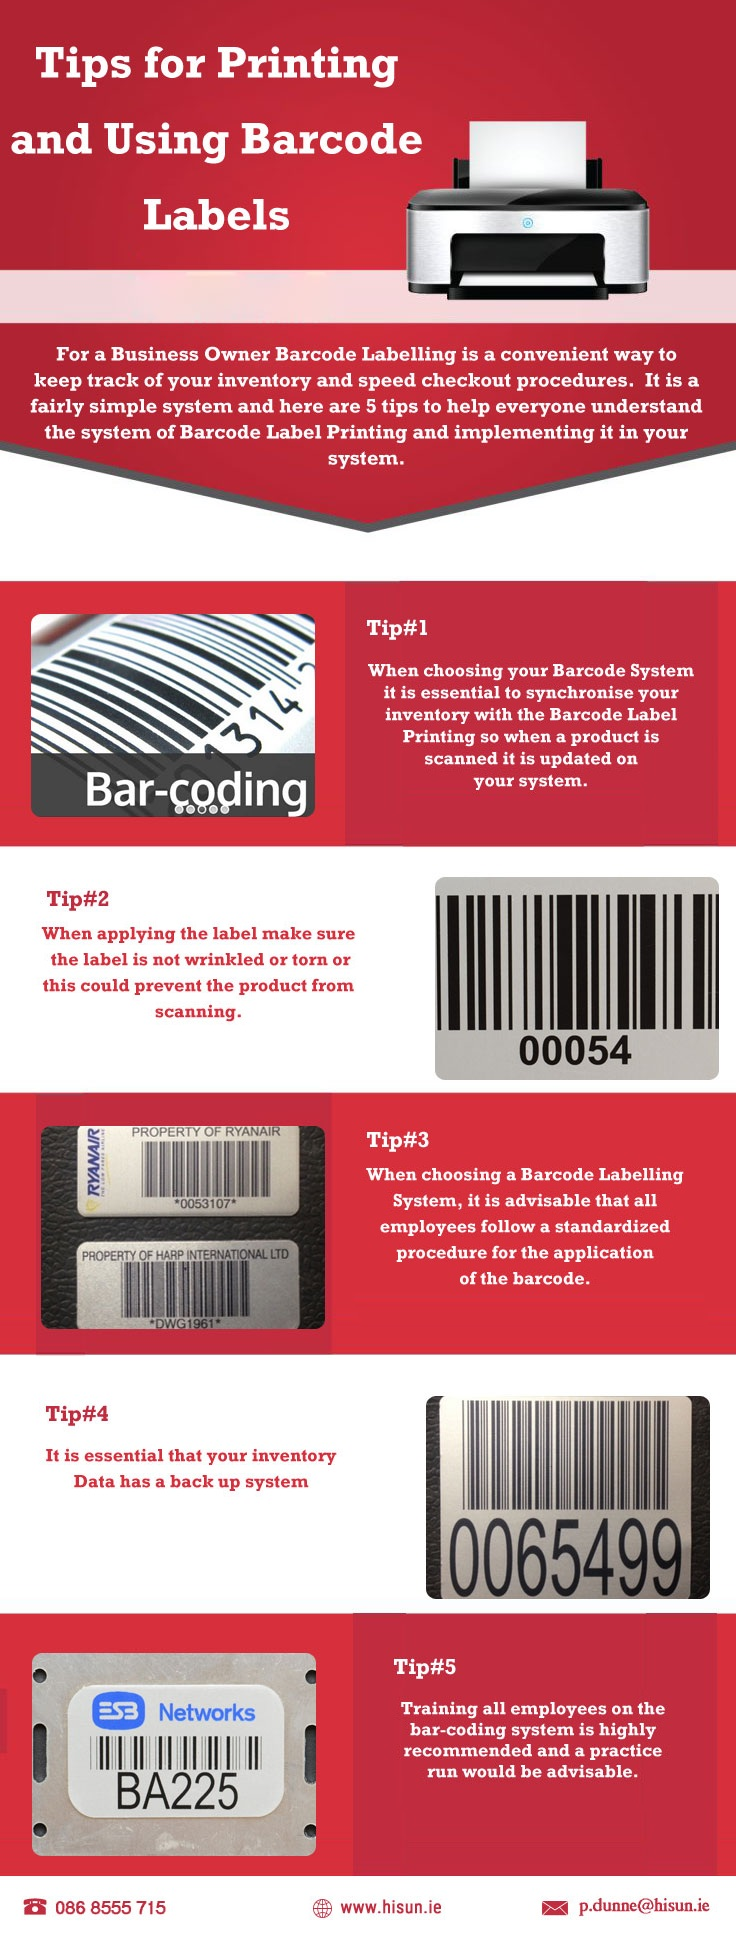 Tips for printing using barcode labels